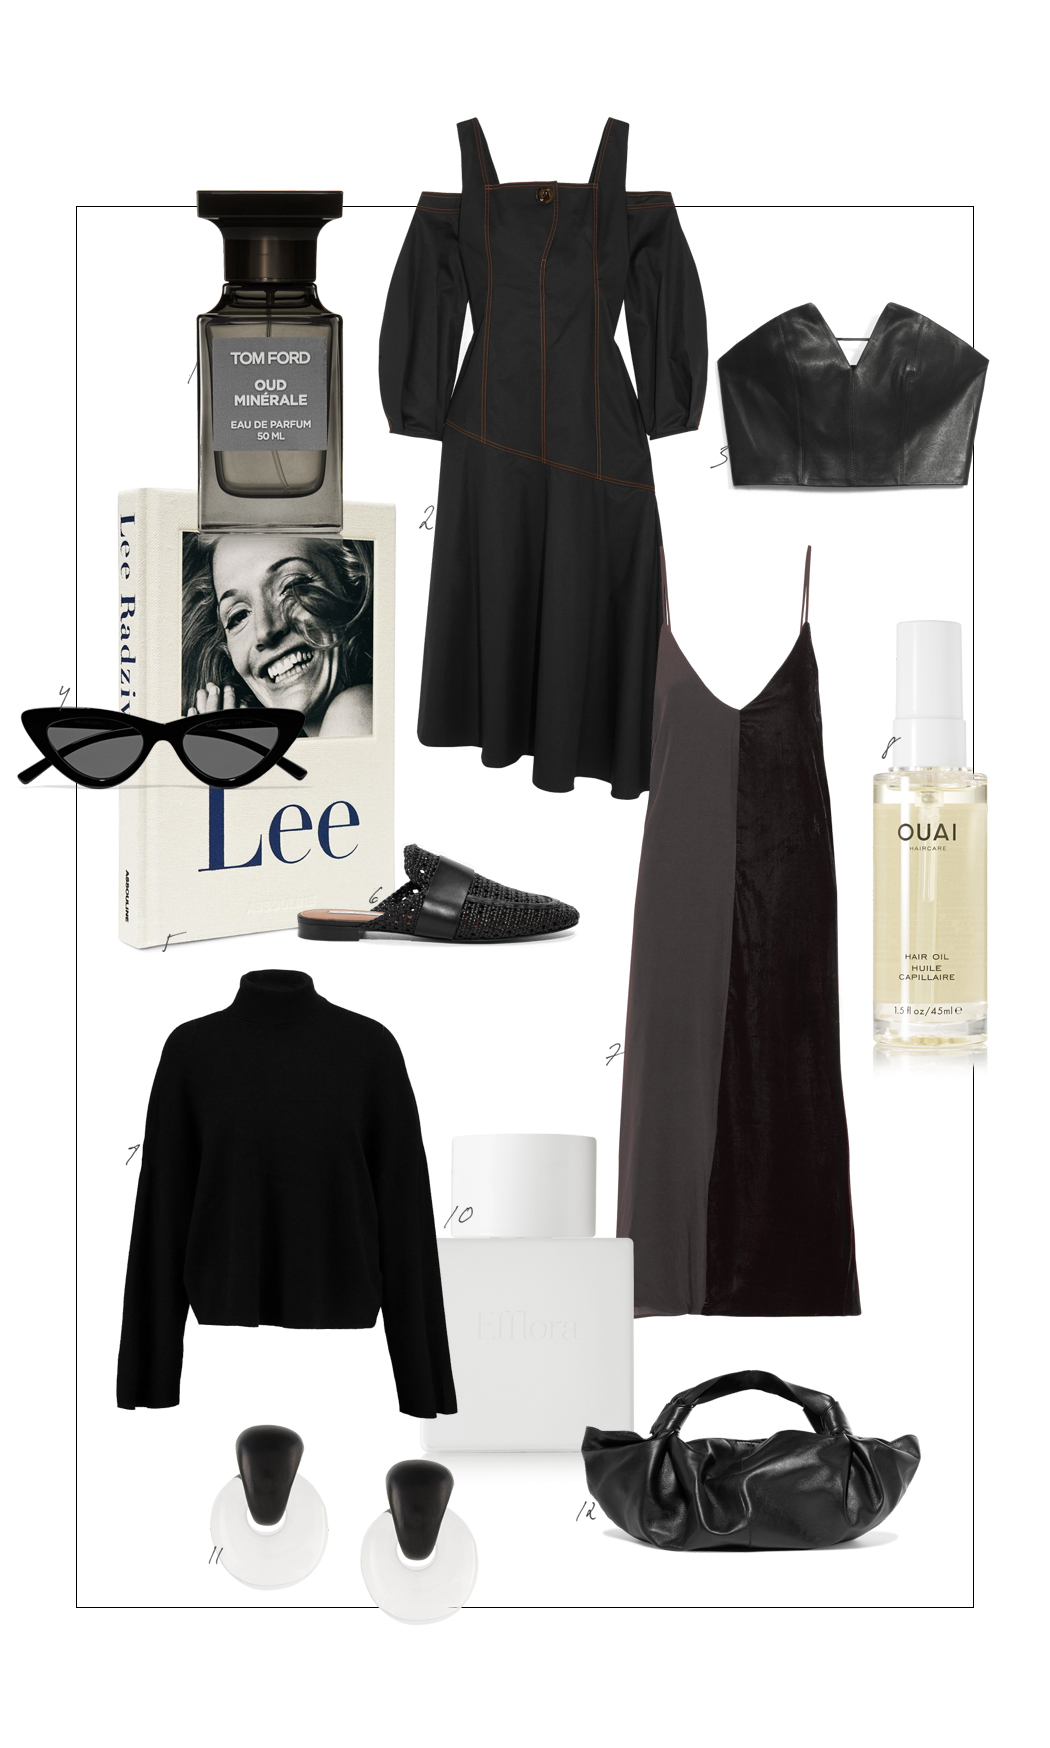 The Dashing Rider - How To Look Great in All Black